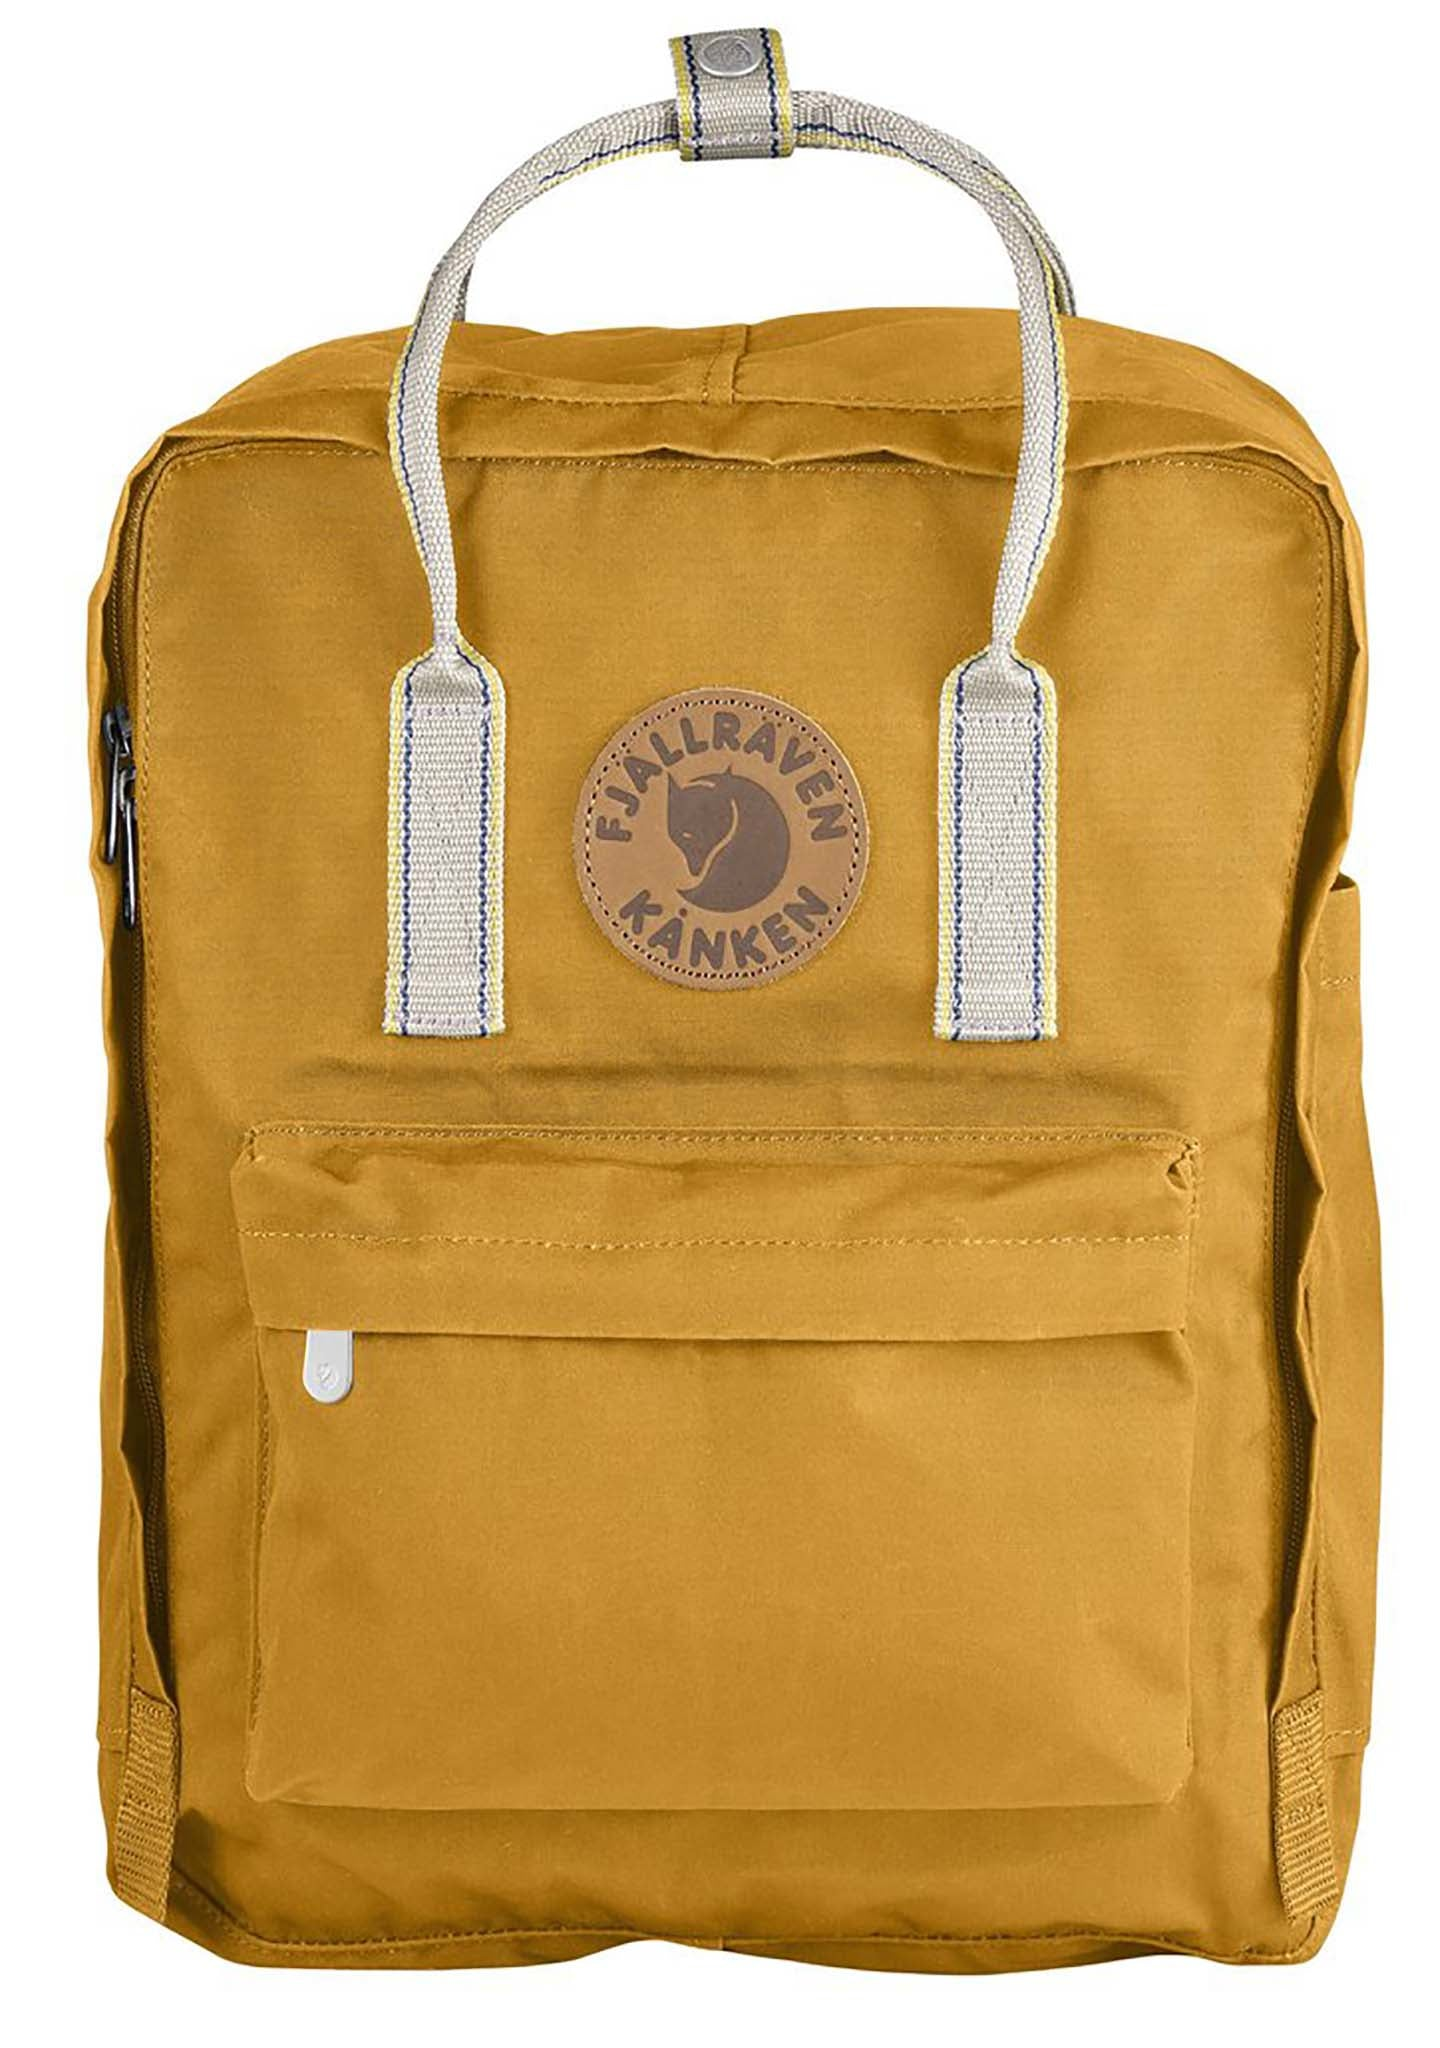 Kanken Greenland Backpack in Dandelion